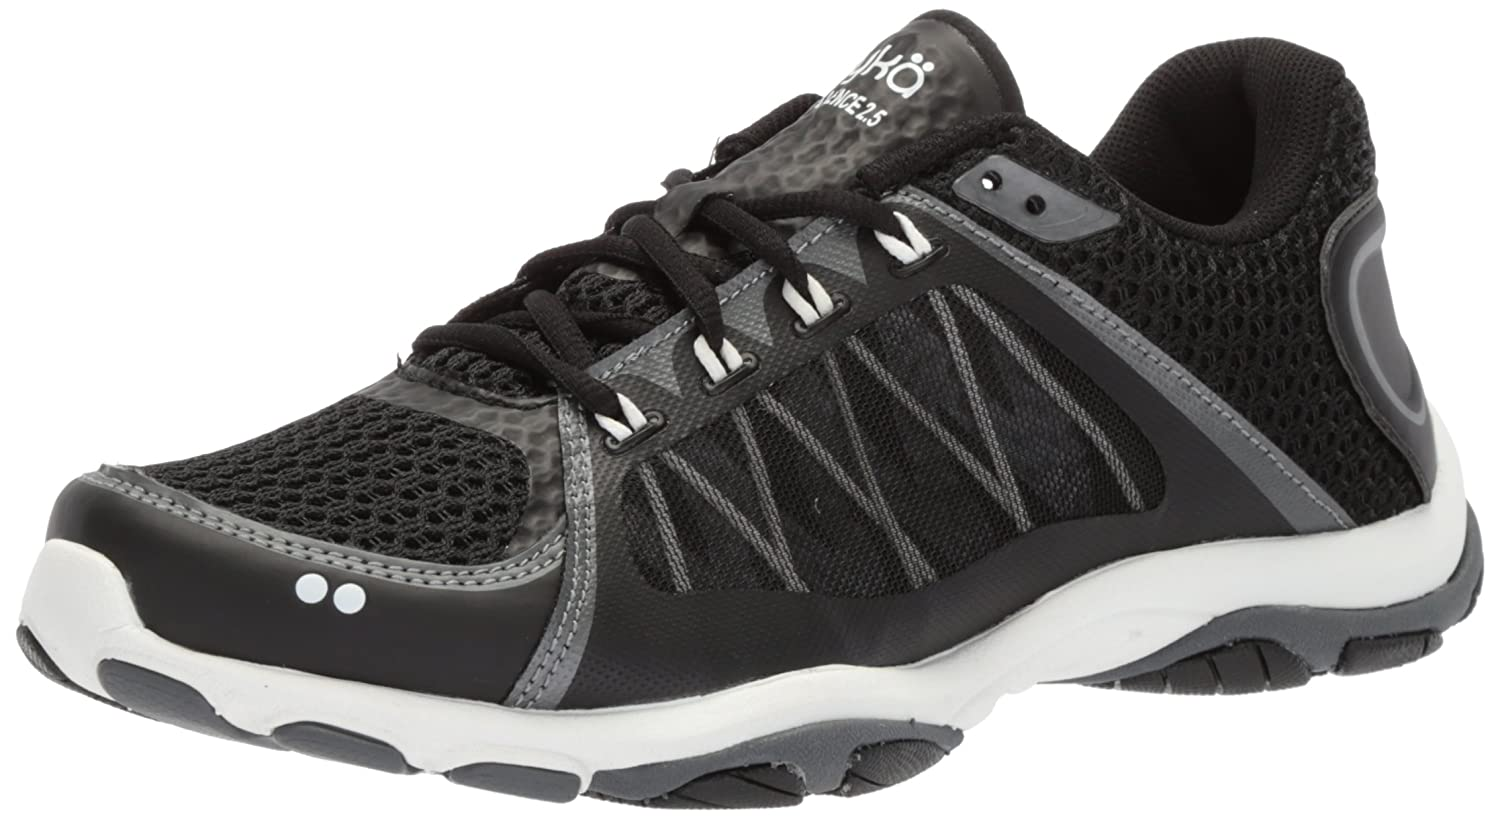 Ryka Women's Influence 2.5 Cross Trainer B0757FC678 8.5 W US|Black/Meteorite/White